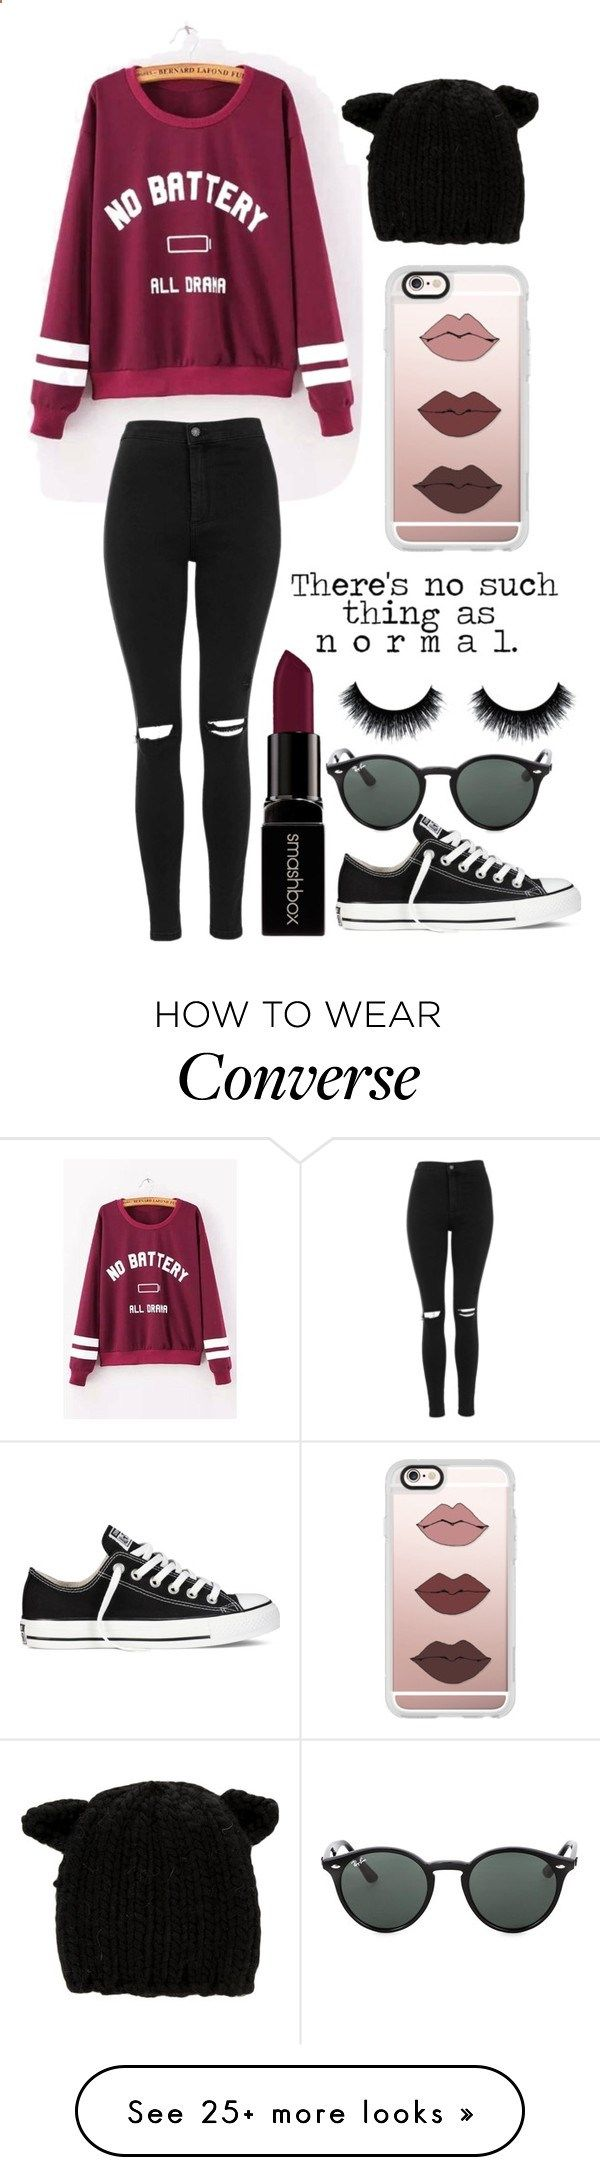 No Such Thing As Normal by emiliajf on Polyvore featuring Topshop, Smashbox, Casetify, Converse, Eugenia Kim and Ray-Ban